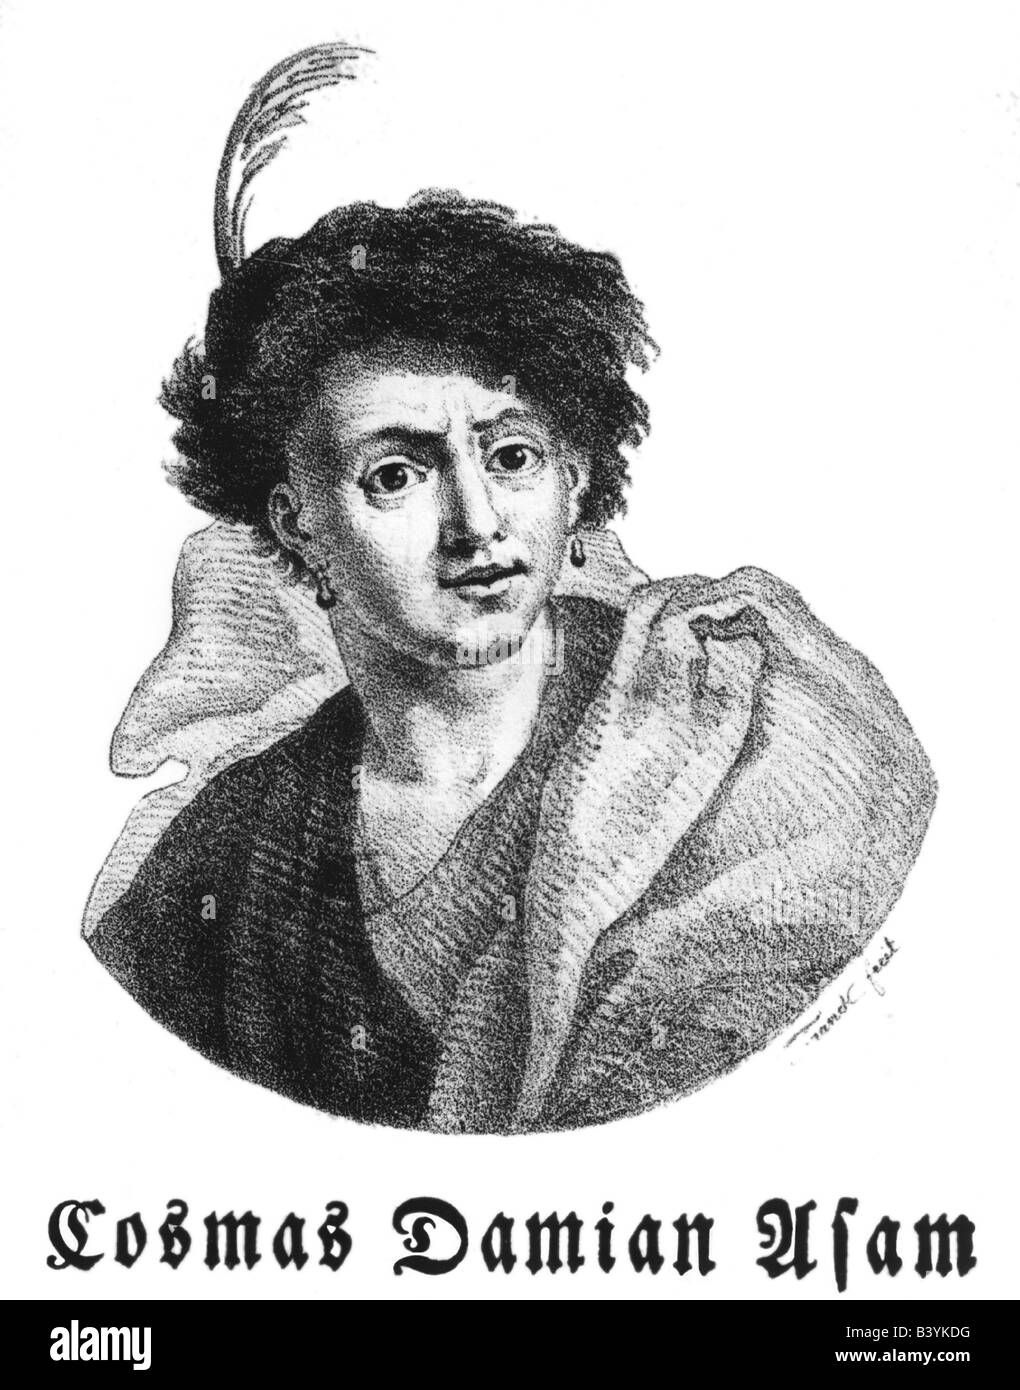 Asam, Cosmas Damian, 28.9.1686 - 10.5.1742, German painter, sculptor and architect, portrait, wood engraving, 19th - Stock Image